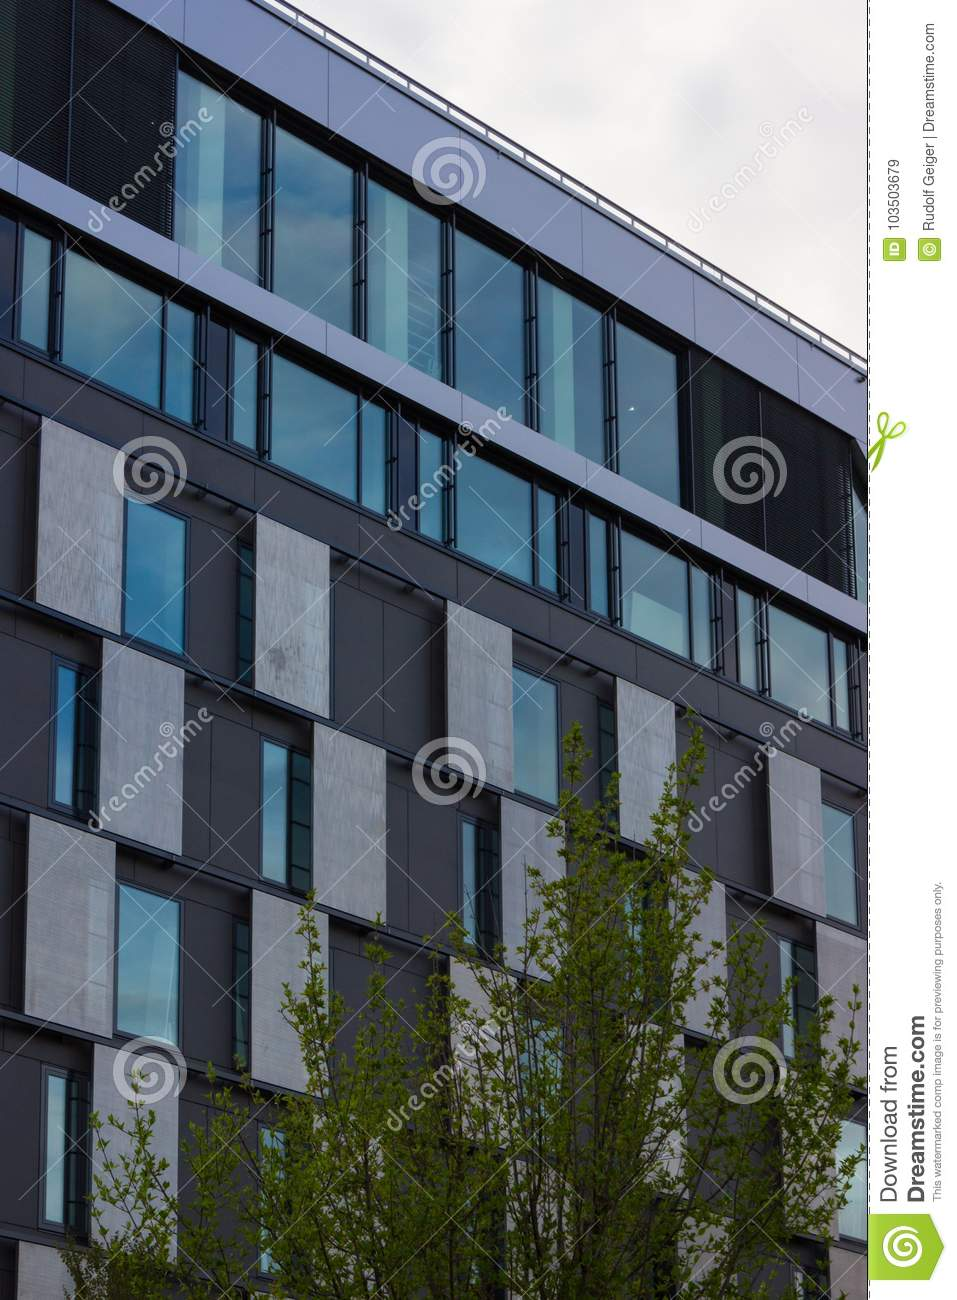 Download Day And Night Series Of Office Facades Stock Image  Of Reflection Urban